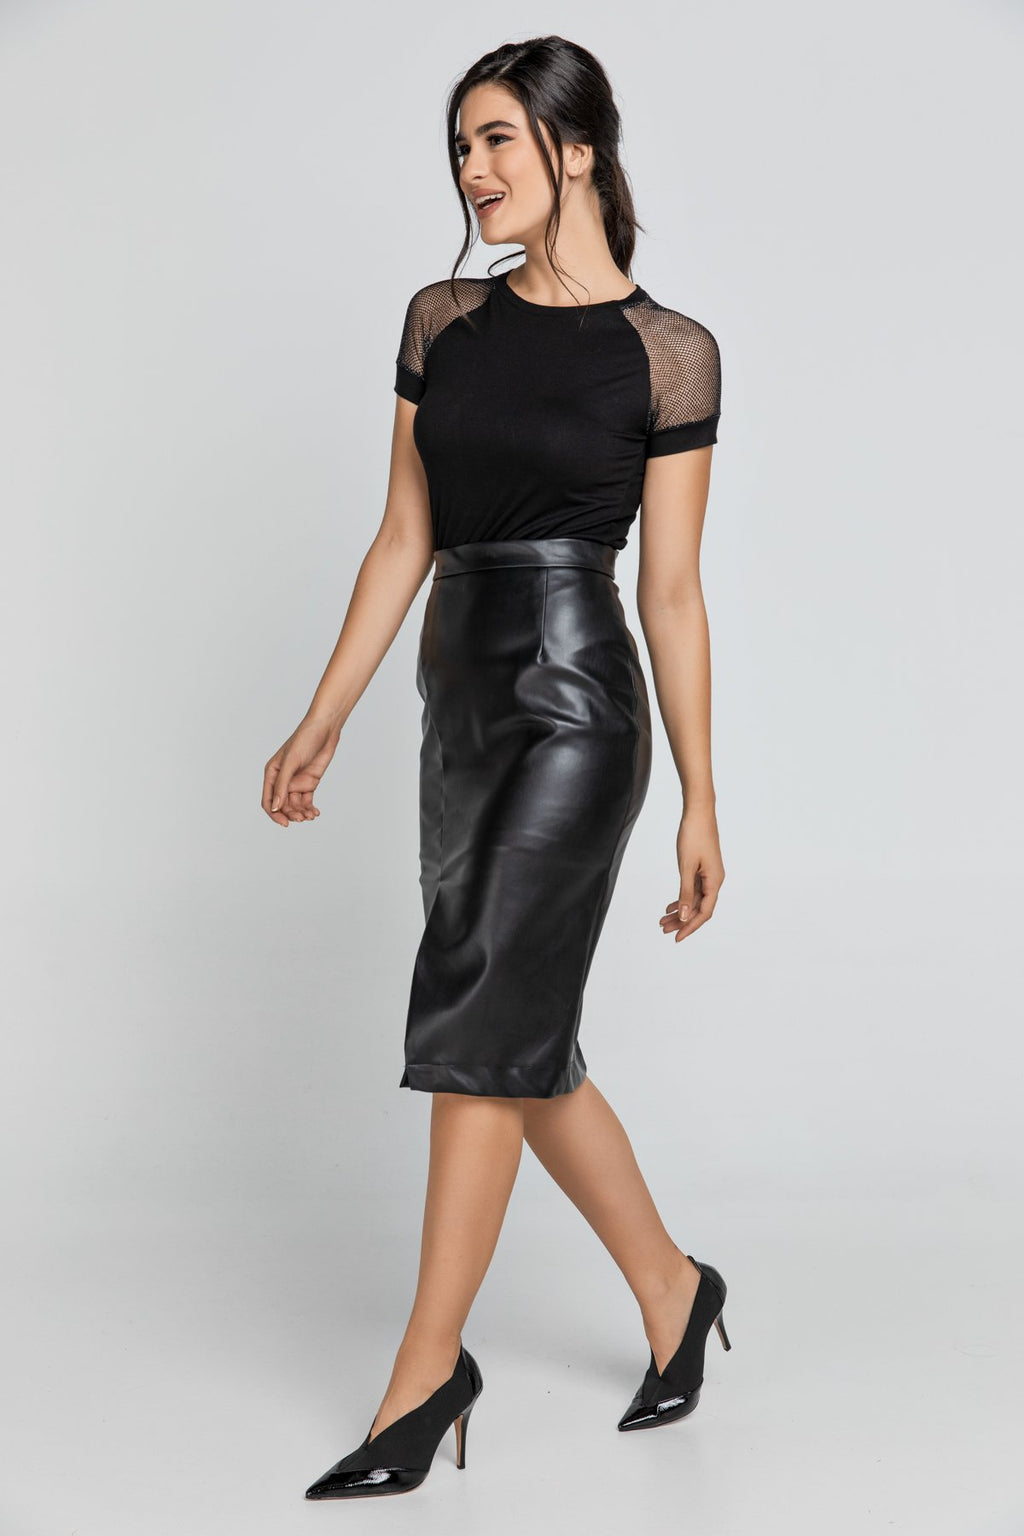 Black Faux Leather Pencil Slit Skirt by Conquista Fashion